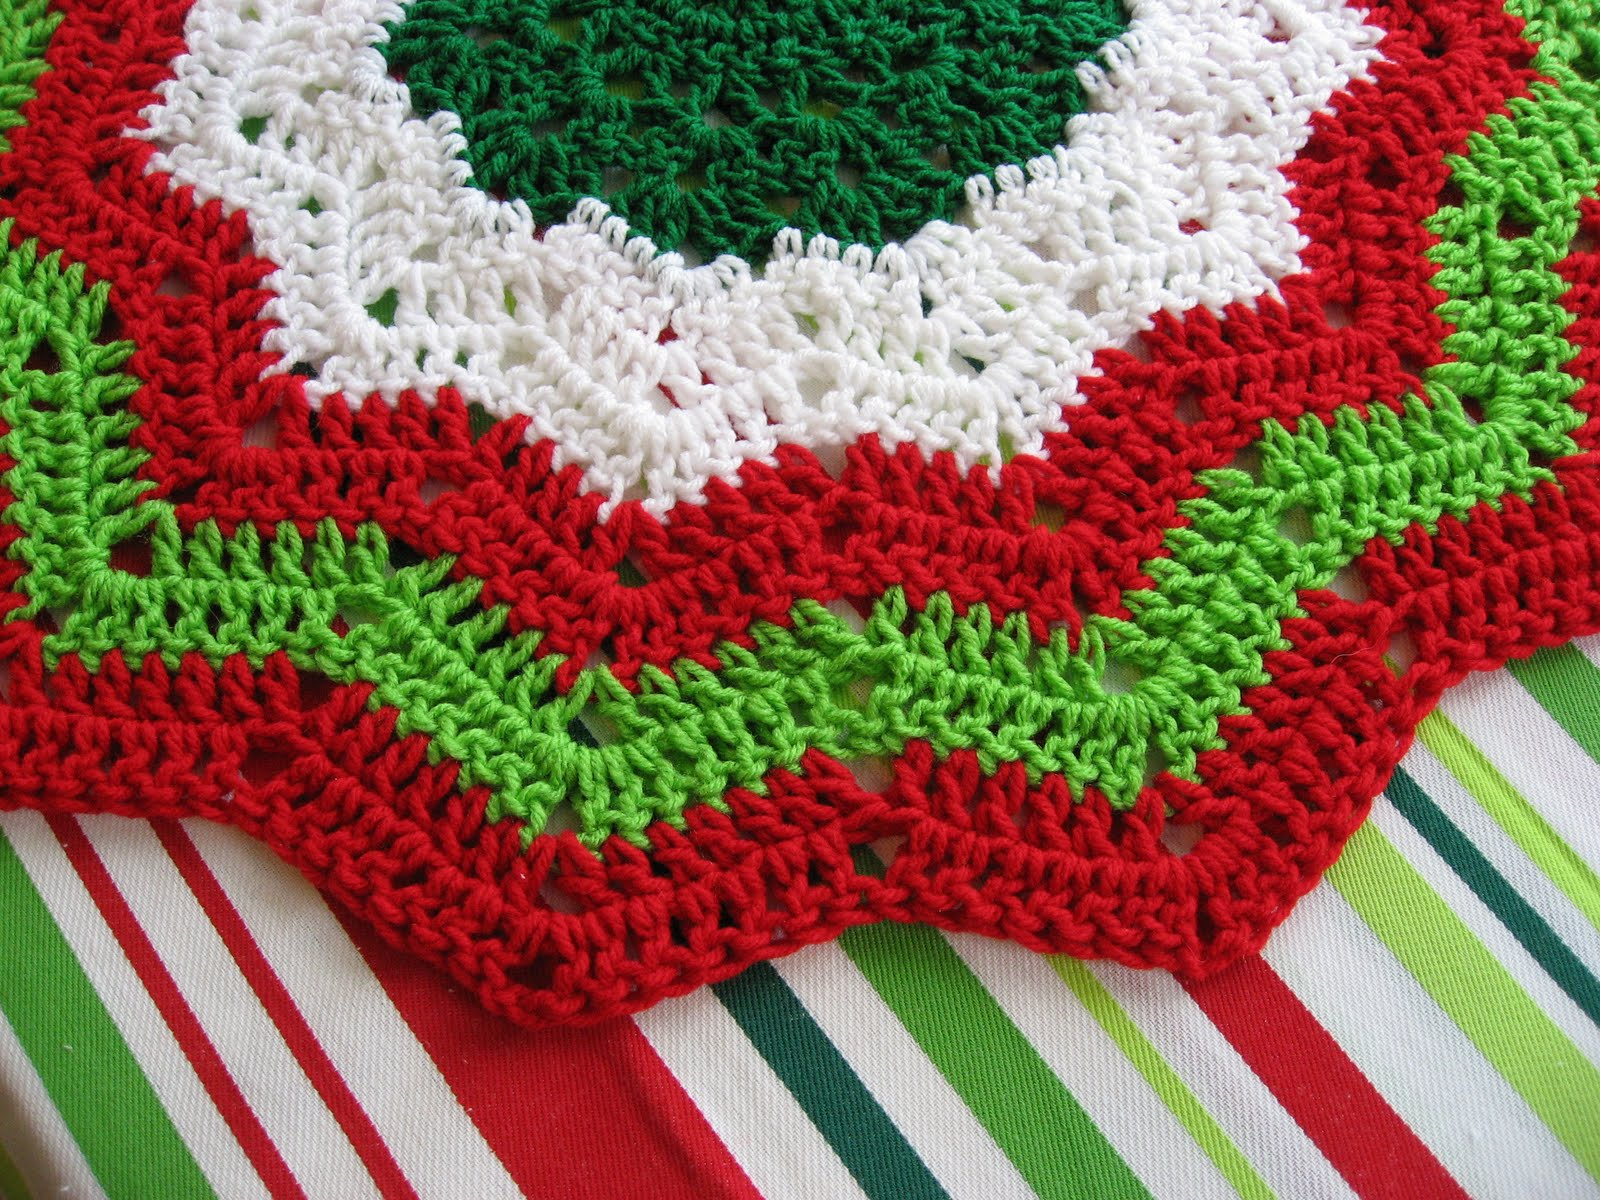 Free Crochet Pattern Christmas : CROCHETED CHRISTMAS TREE SKIRT PATTERNS - Crochet Club